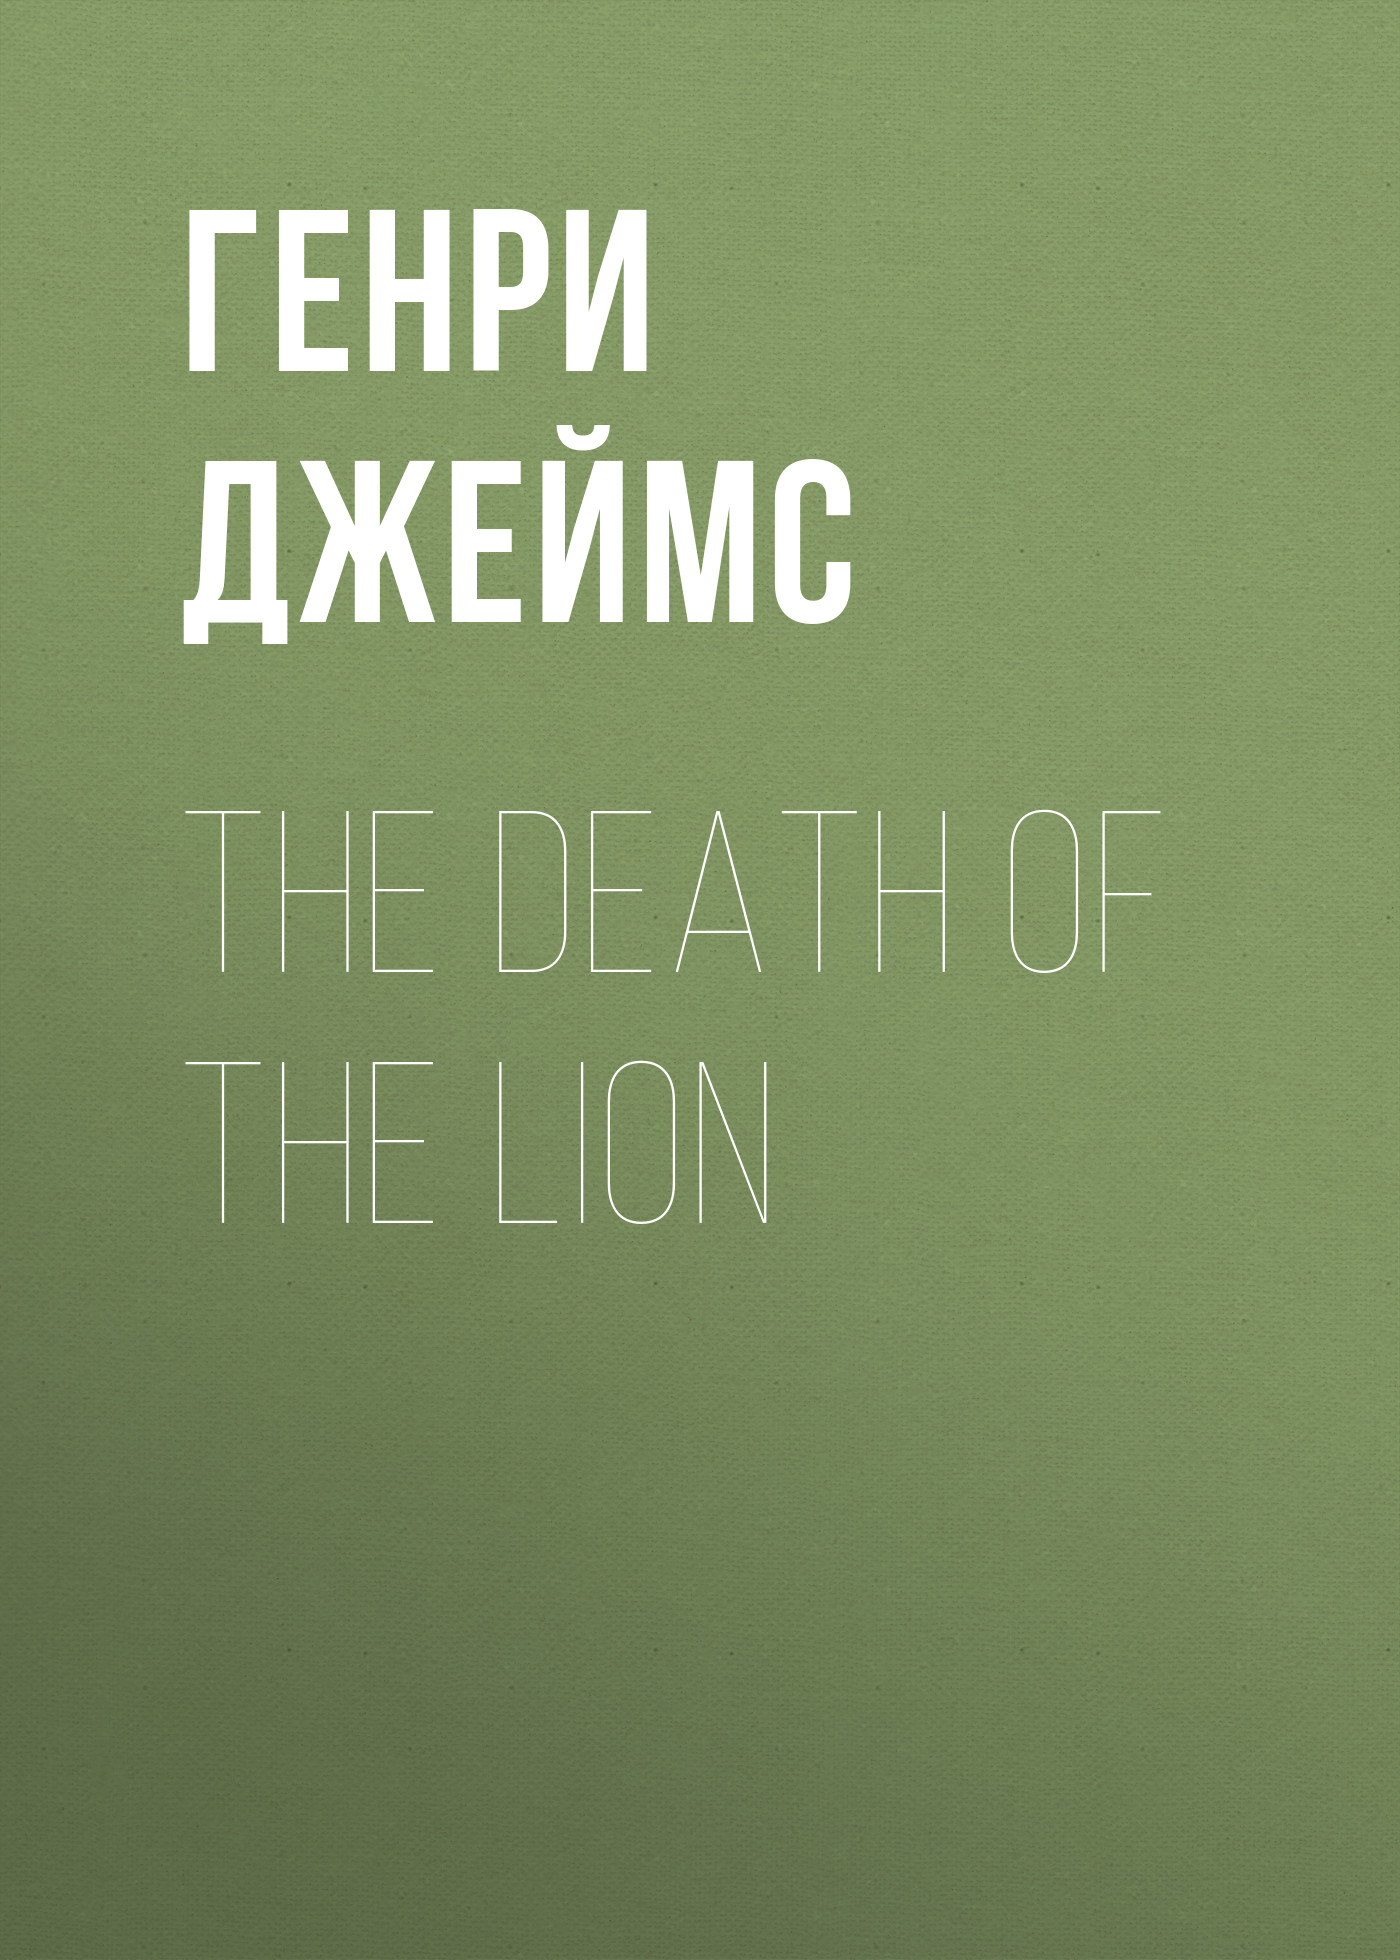 Генри Джеймс The Death of the Lion генри джеймс the spoils of poynton